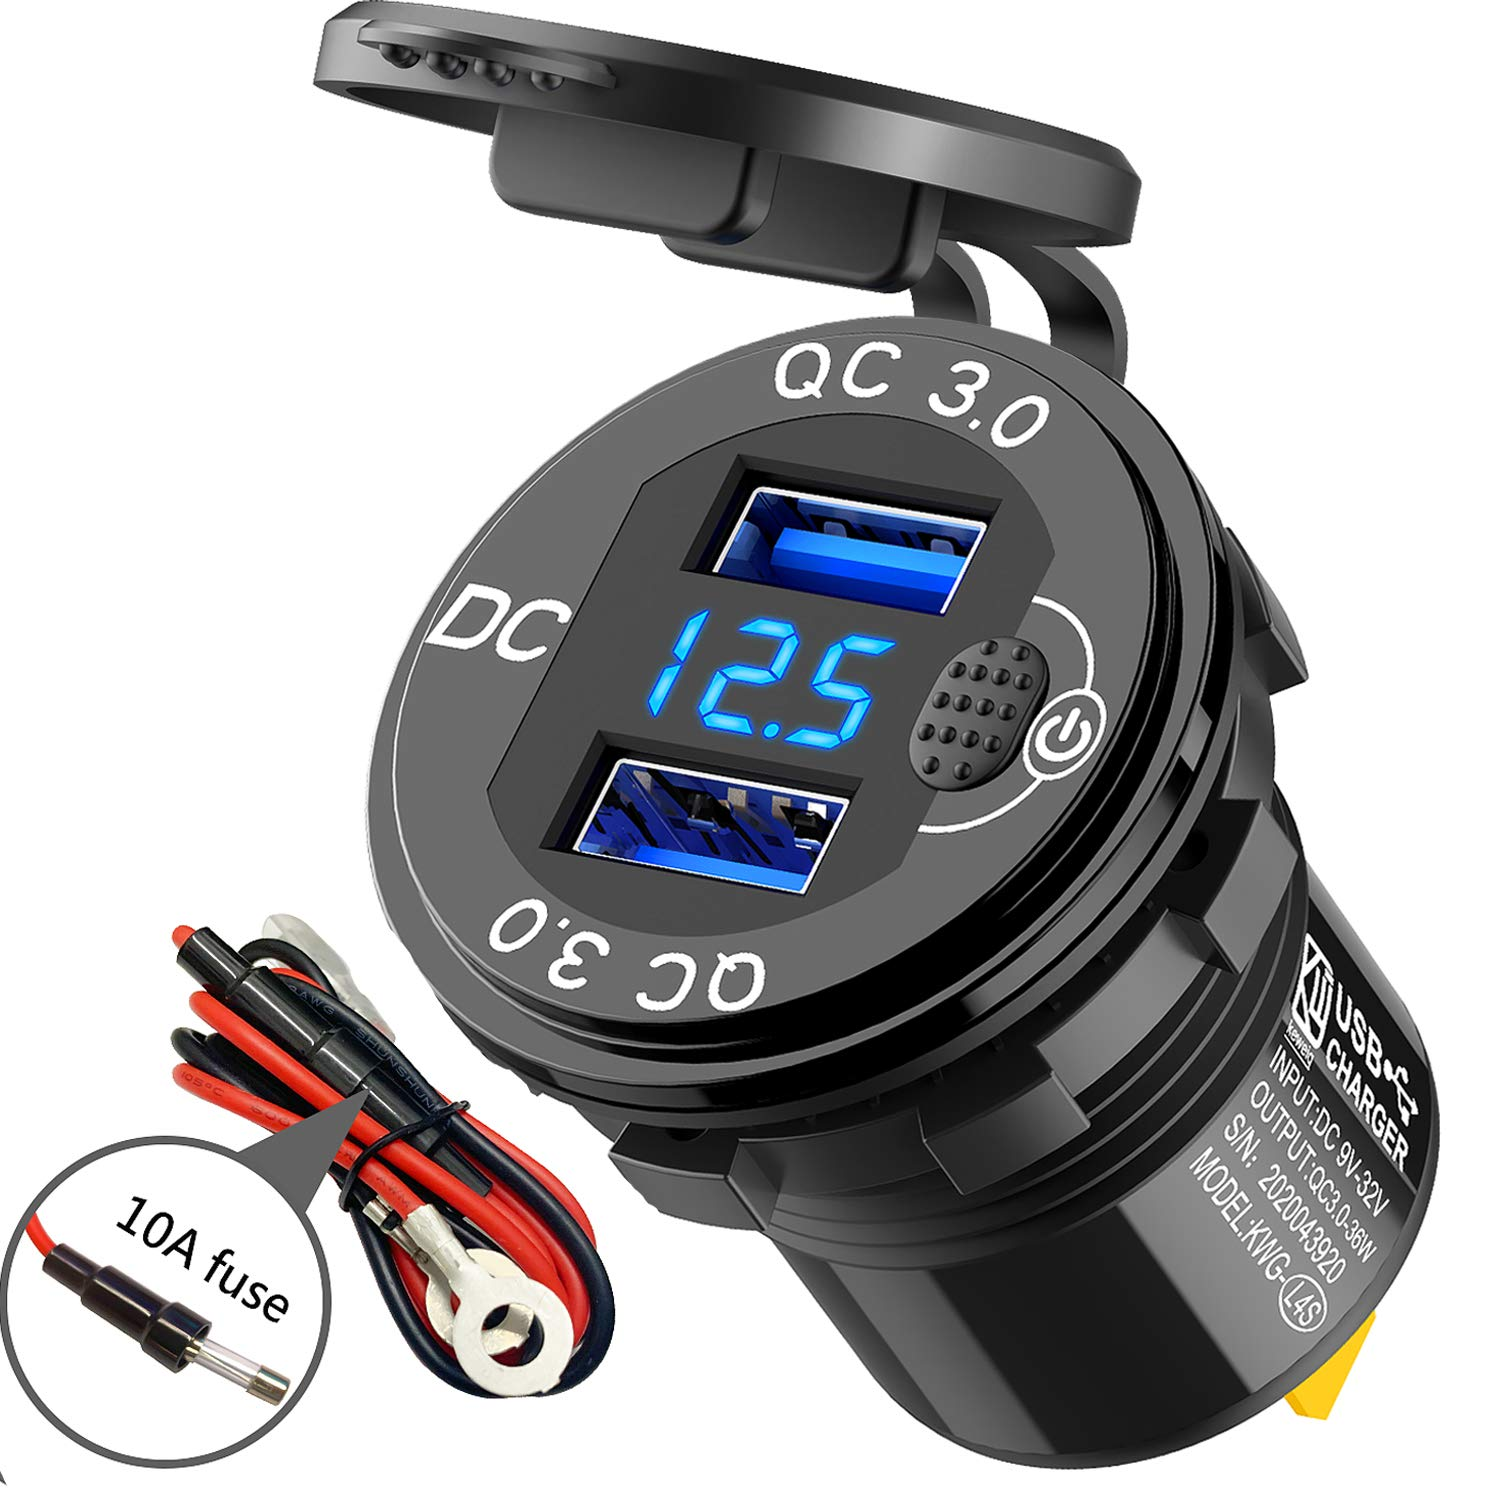 Quick Genuine Free Shipping Charge 3.0 Dual USB Charger Voltmeter Max 42% OFF Swit Socket and with